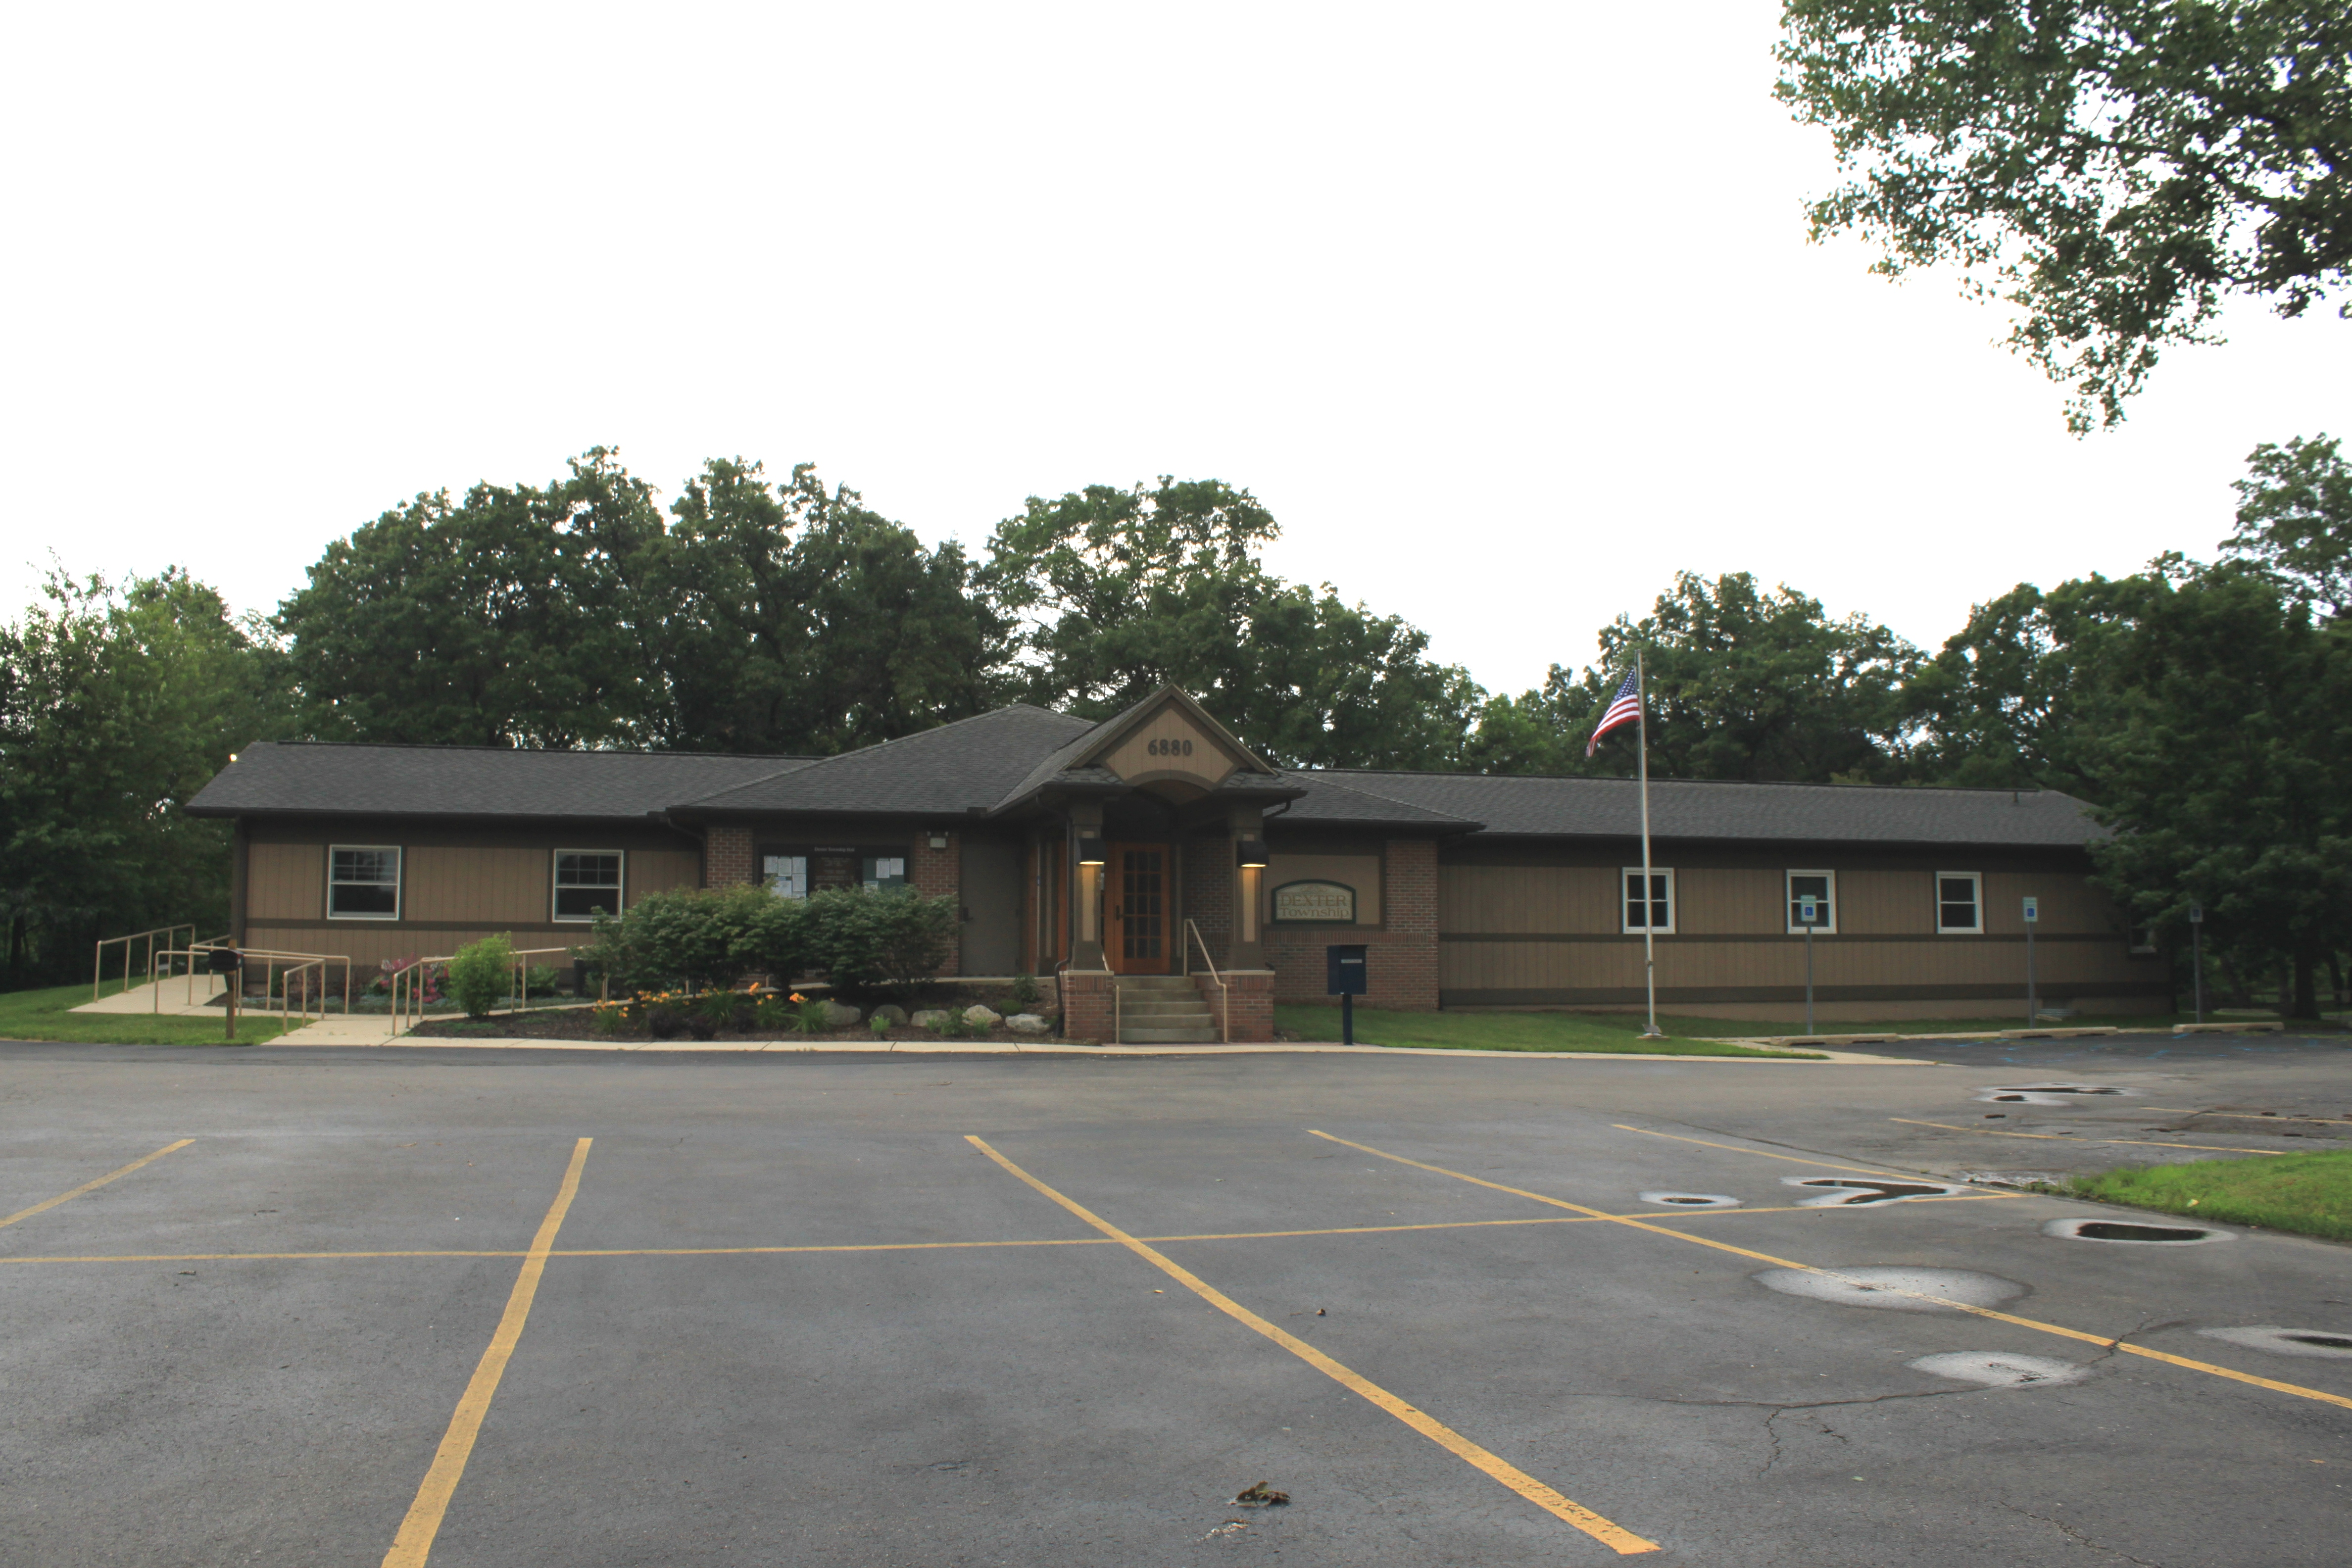 File:Dexter Township Township Hall.JPG - Wikipedia, the free .